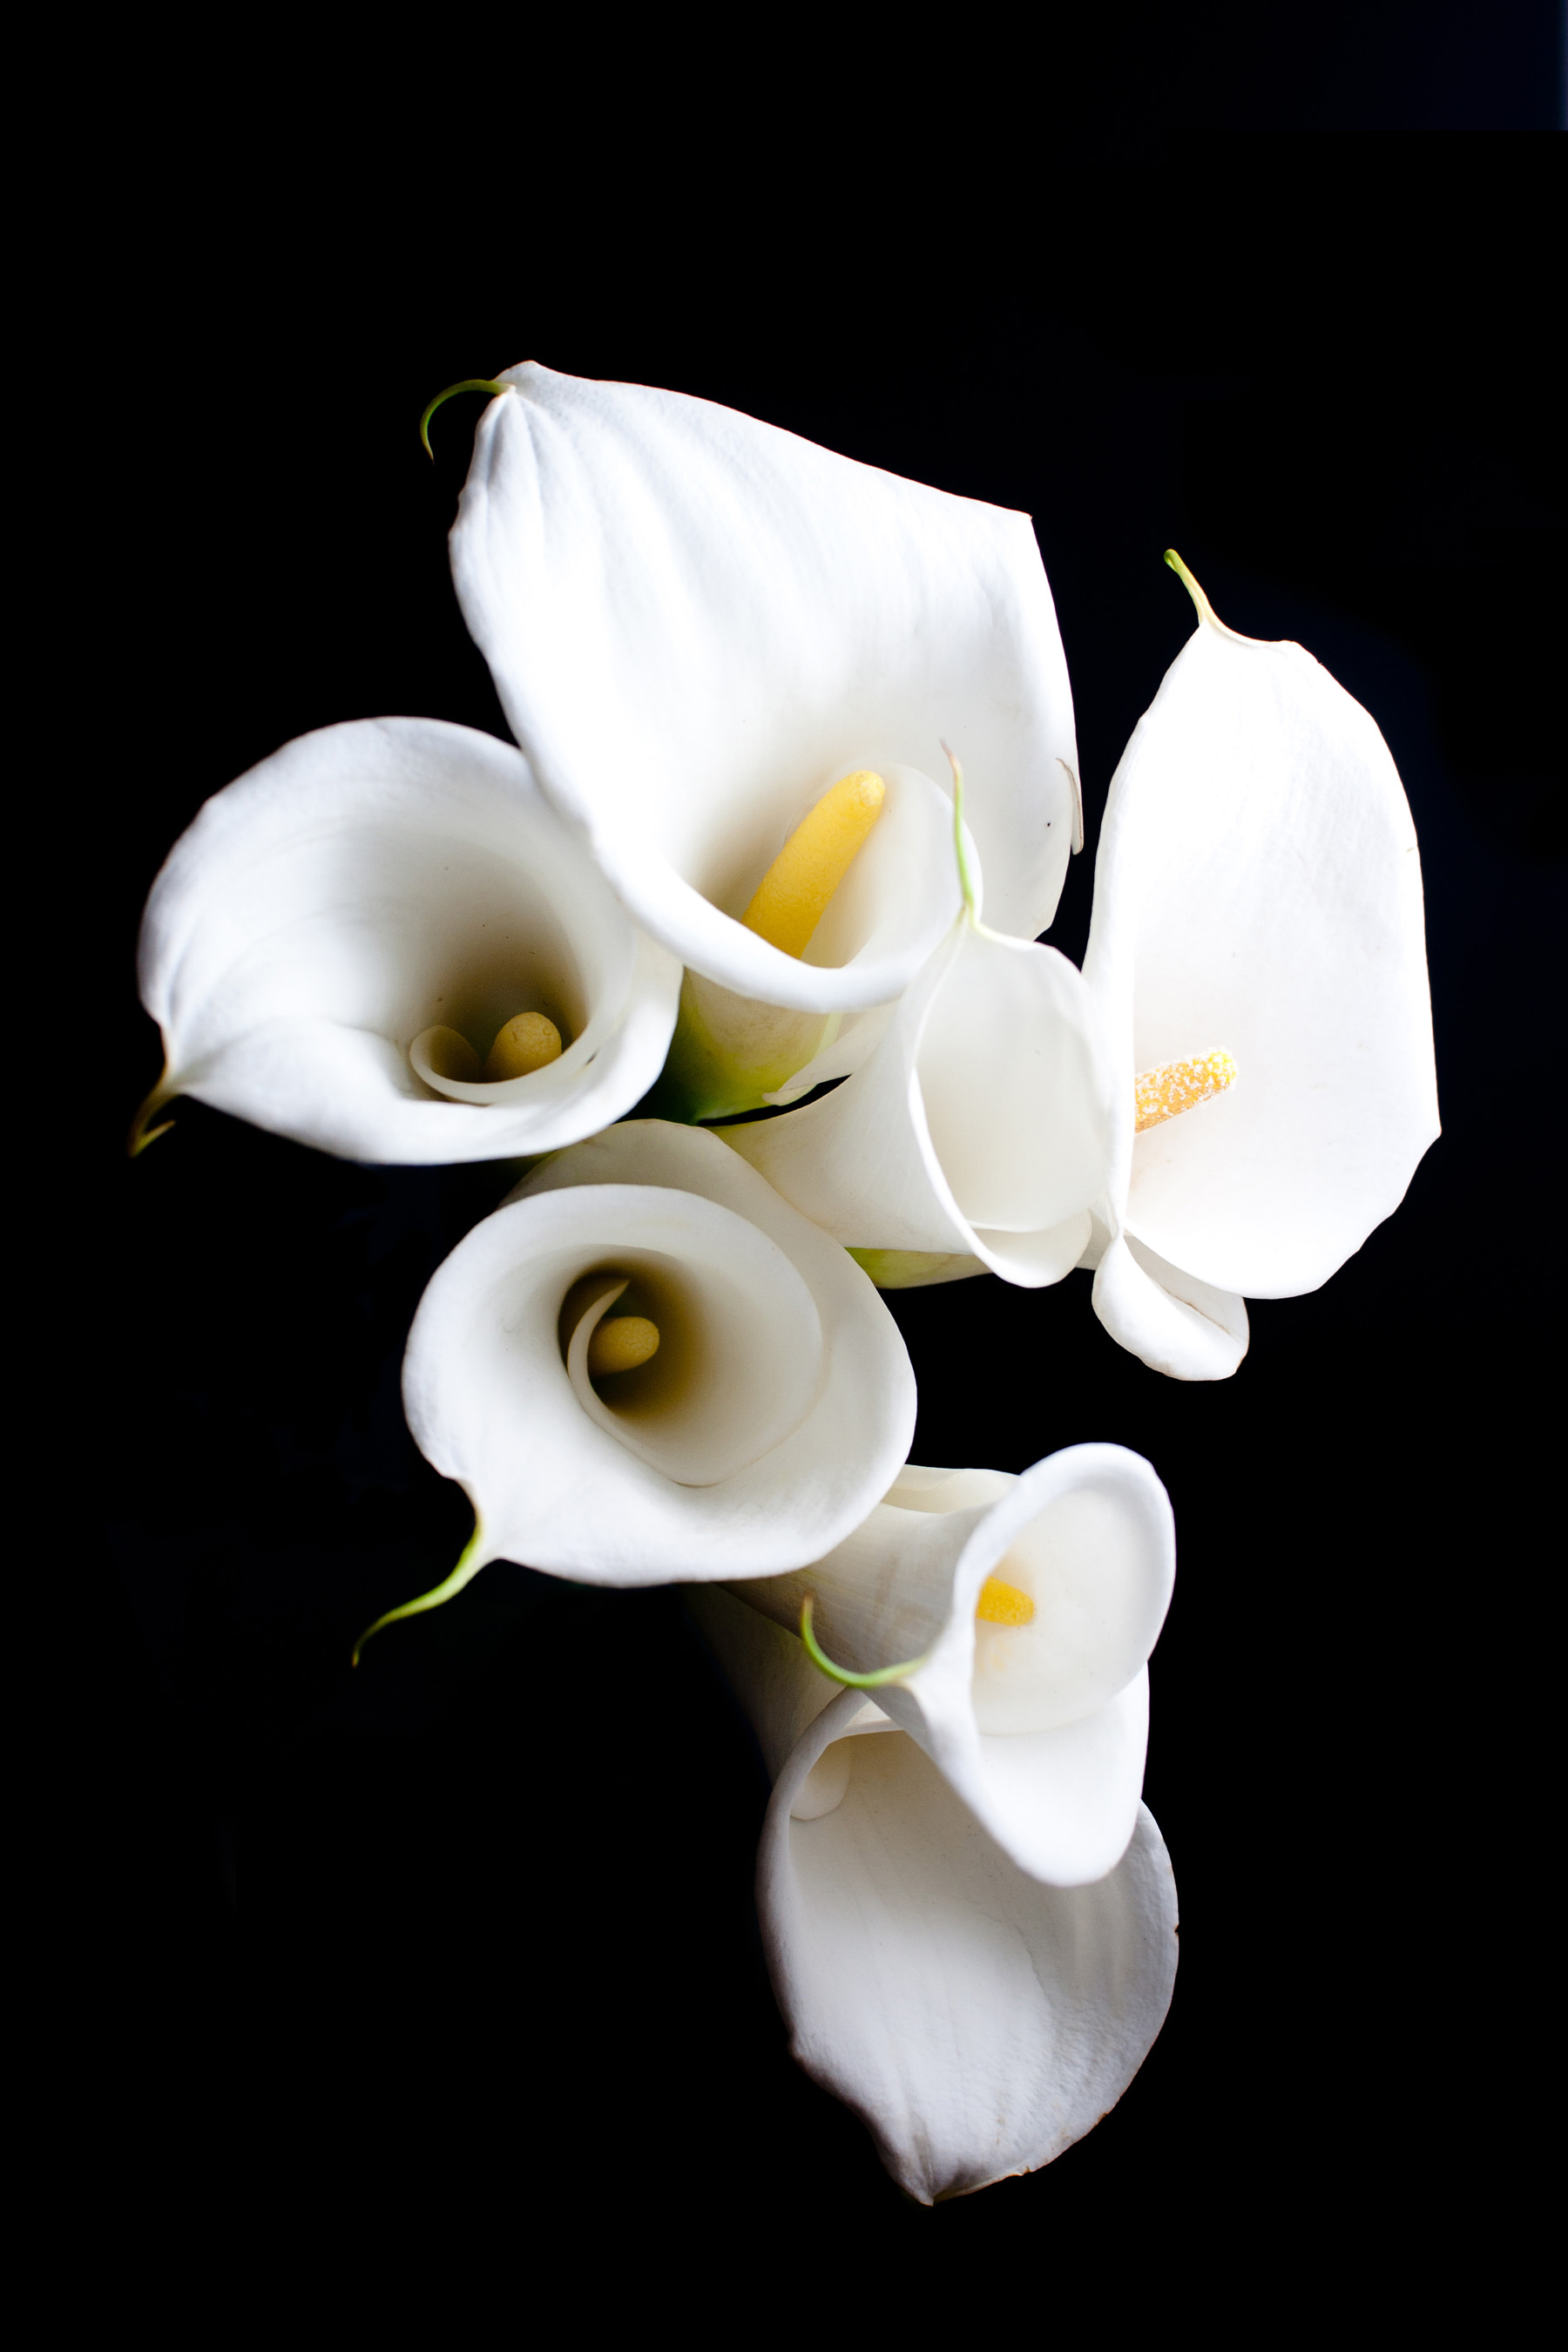 White calla lily flower close up 52016 flowers photo flowers white calla lily flower close up 52016 izmirmasajfo Image collections